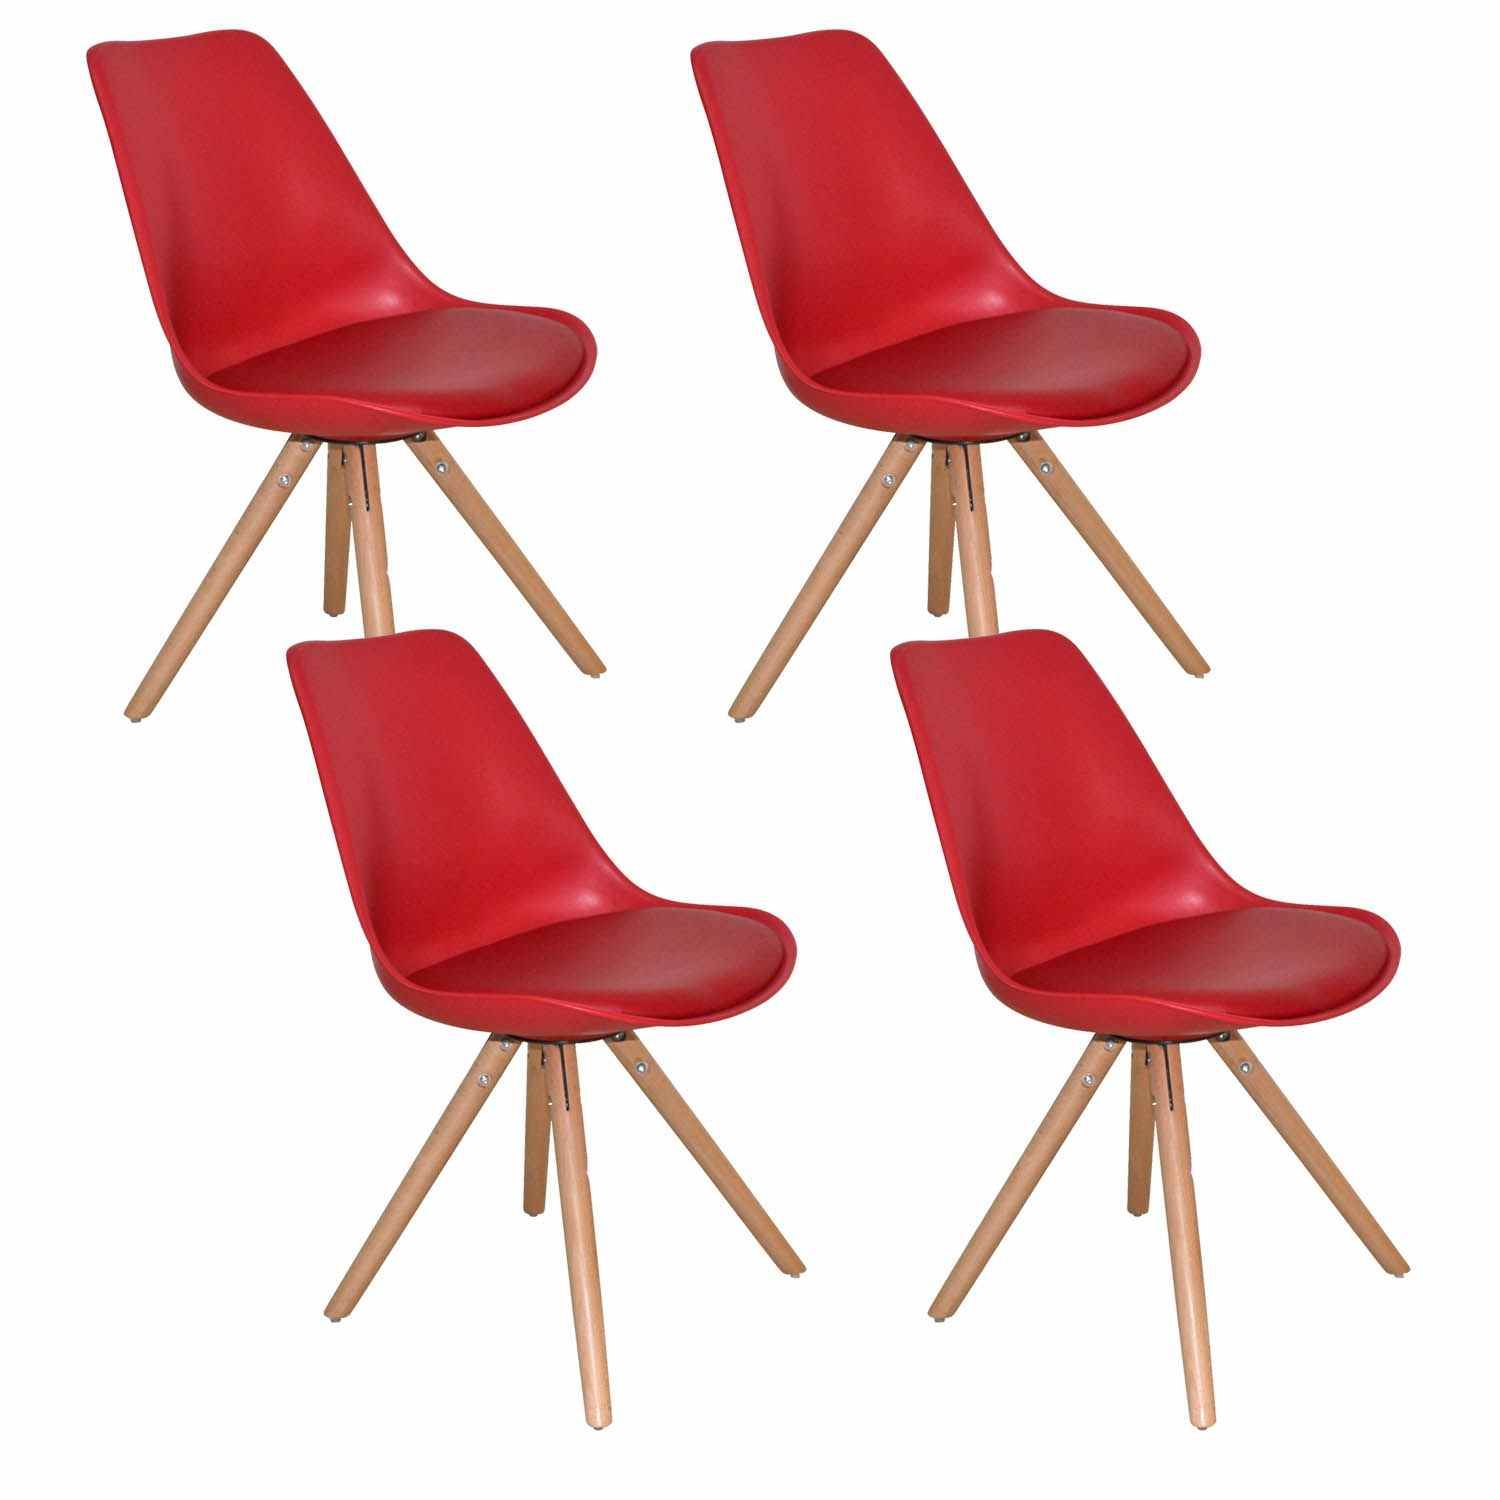 deco in paris lot de 4 chaises design rouge velta velta. Black Bedroom Furniture Sets. Home Design Ideas